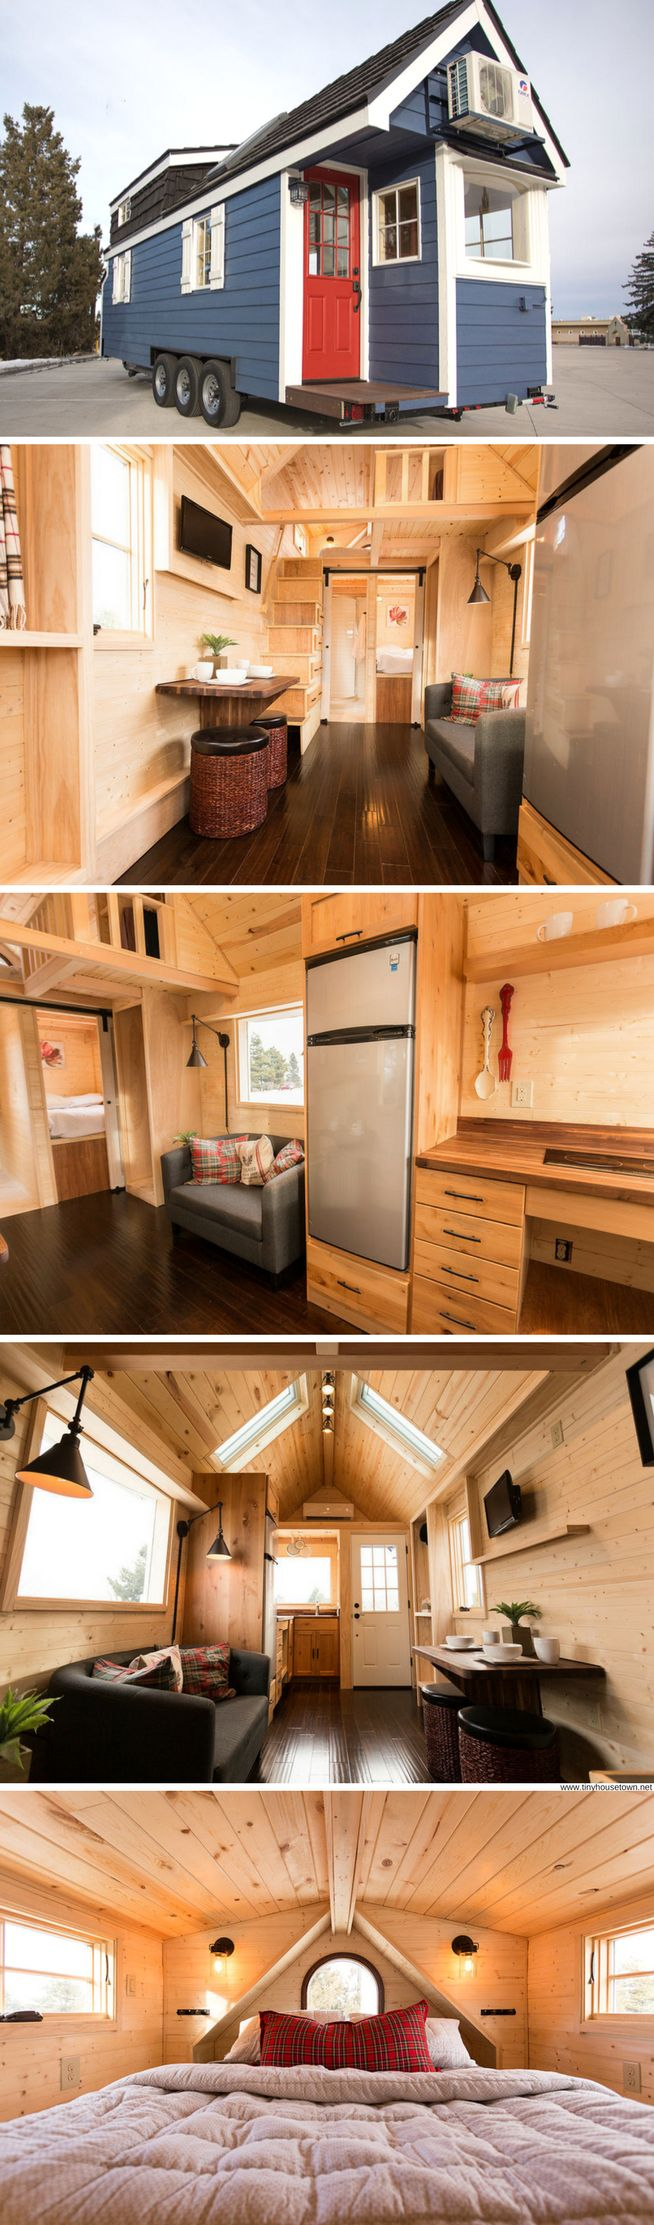 A colorful and beautifully-design 288-sq-ft tiny home available for sale in Colorado!